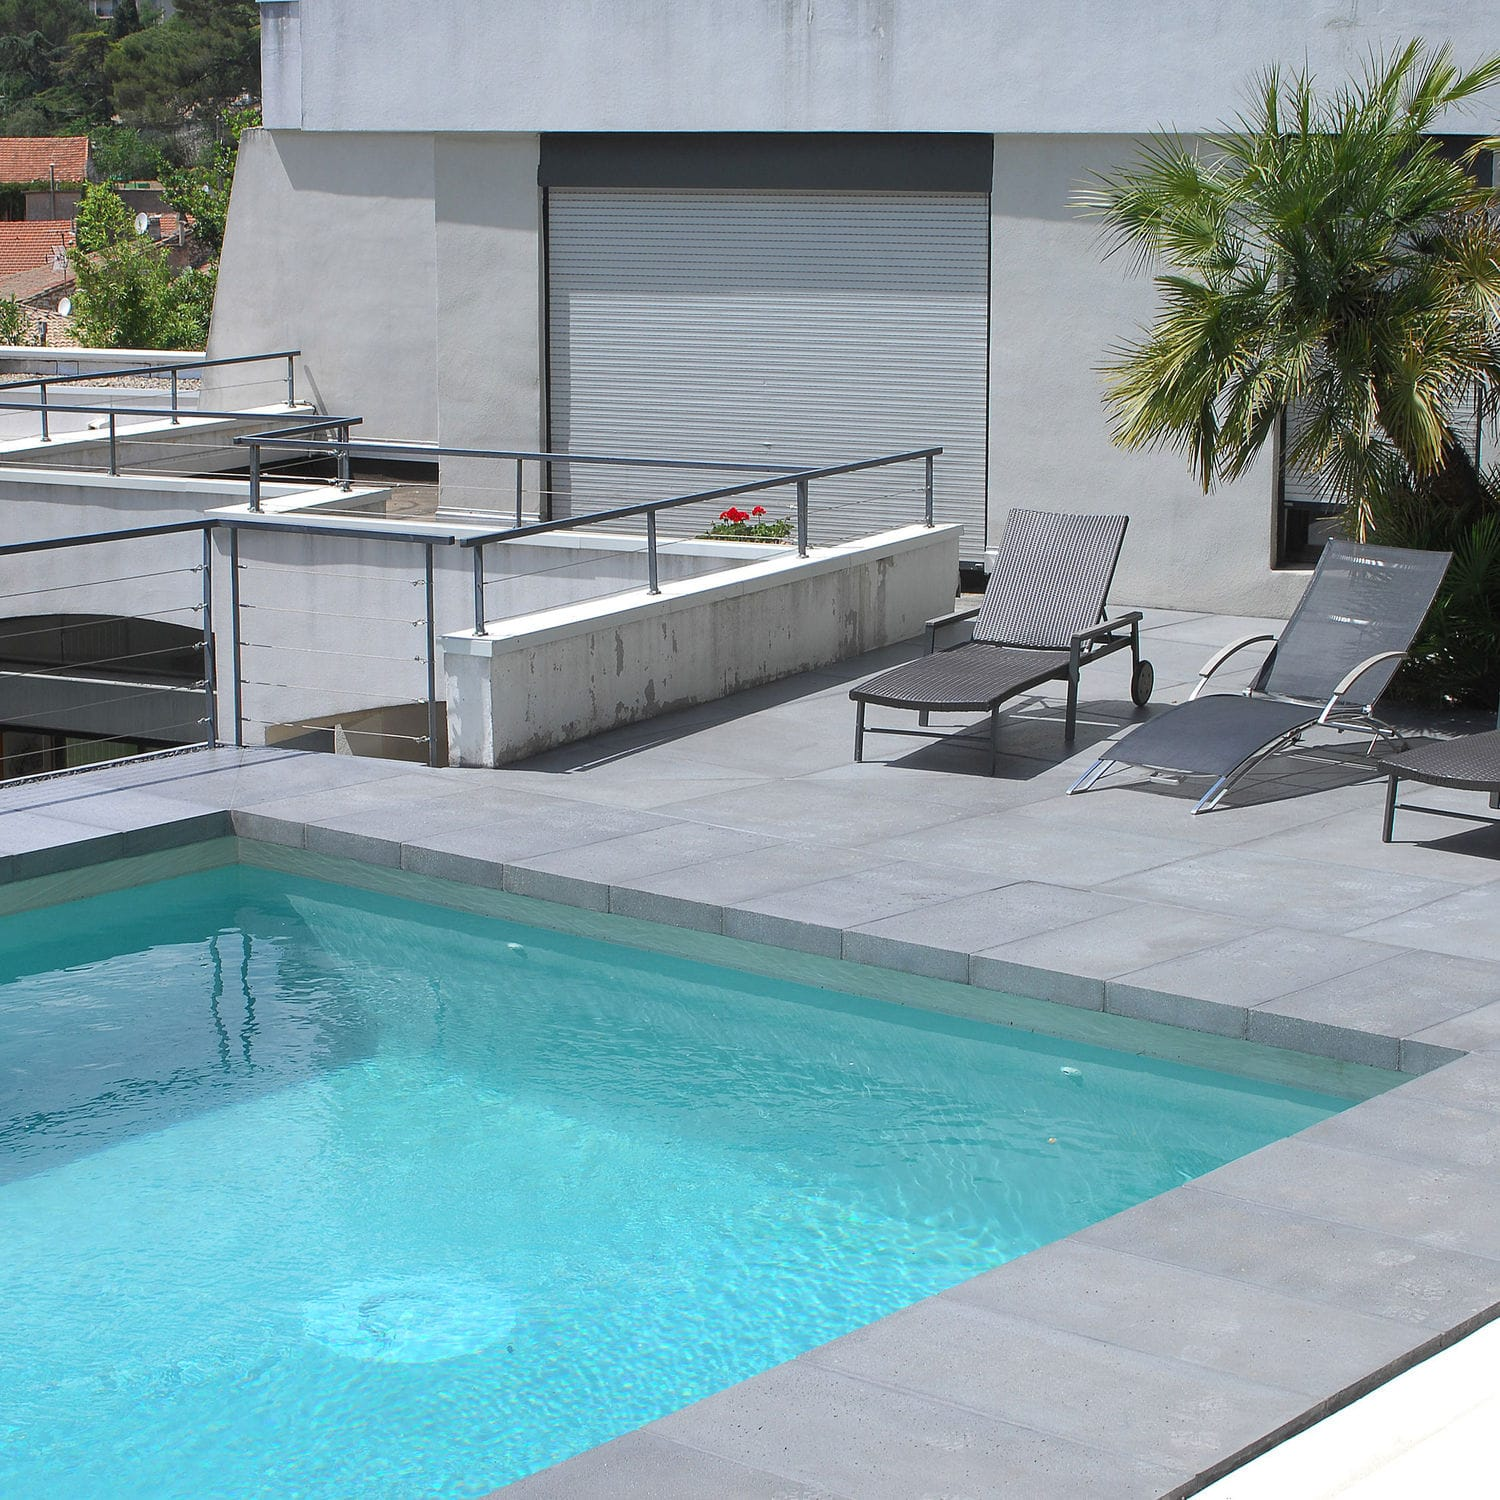 Concrete swimming pool coping - RENO - ROUVIERE